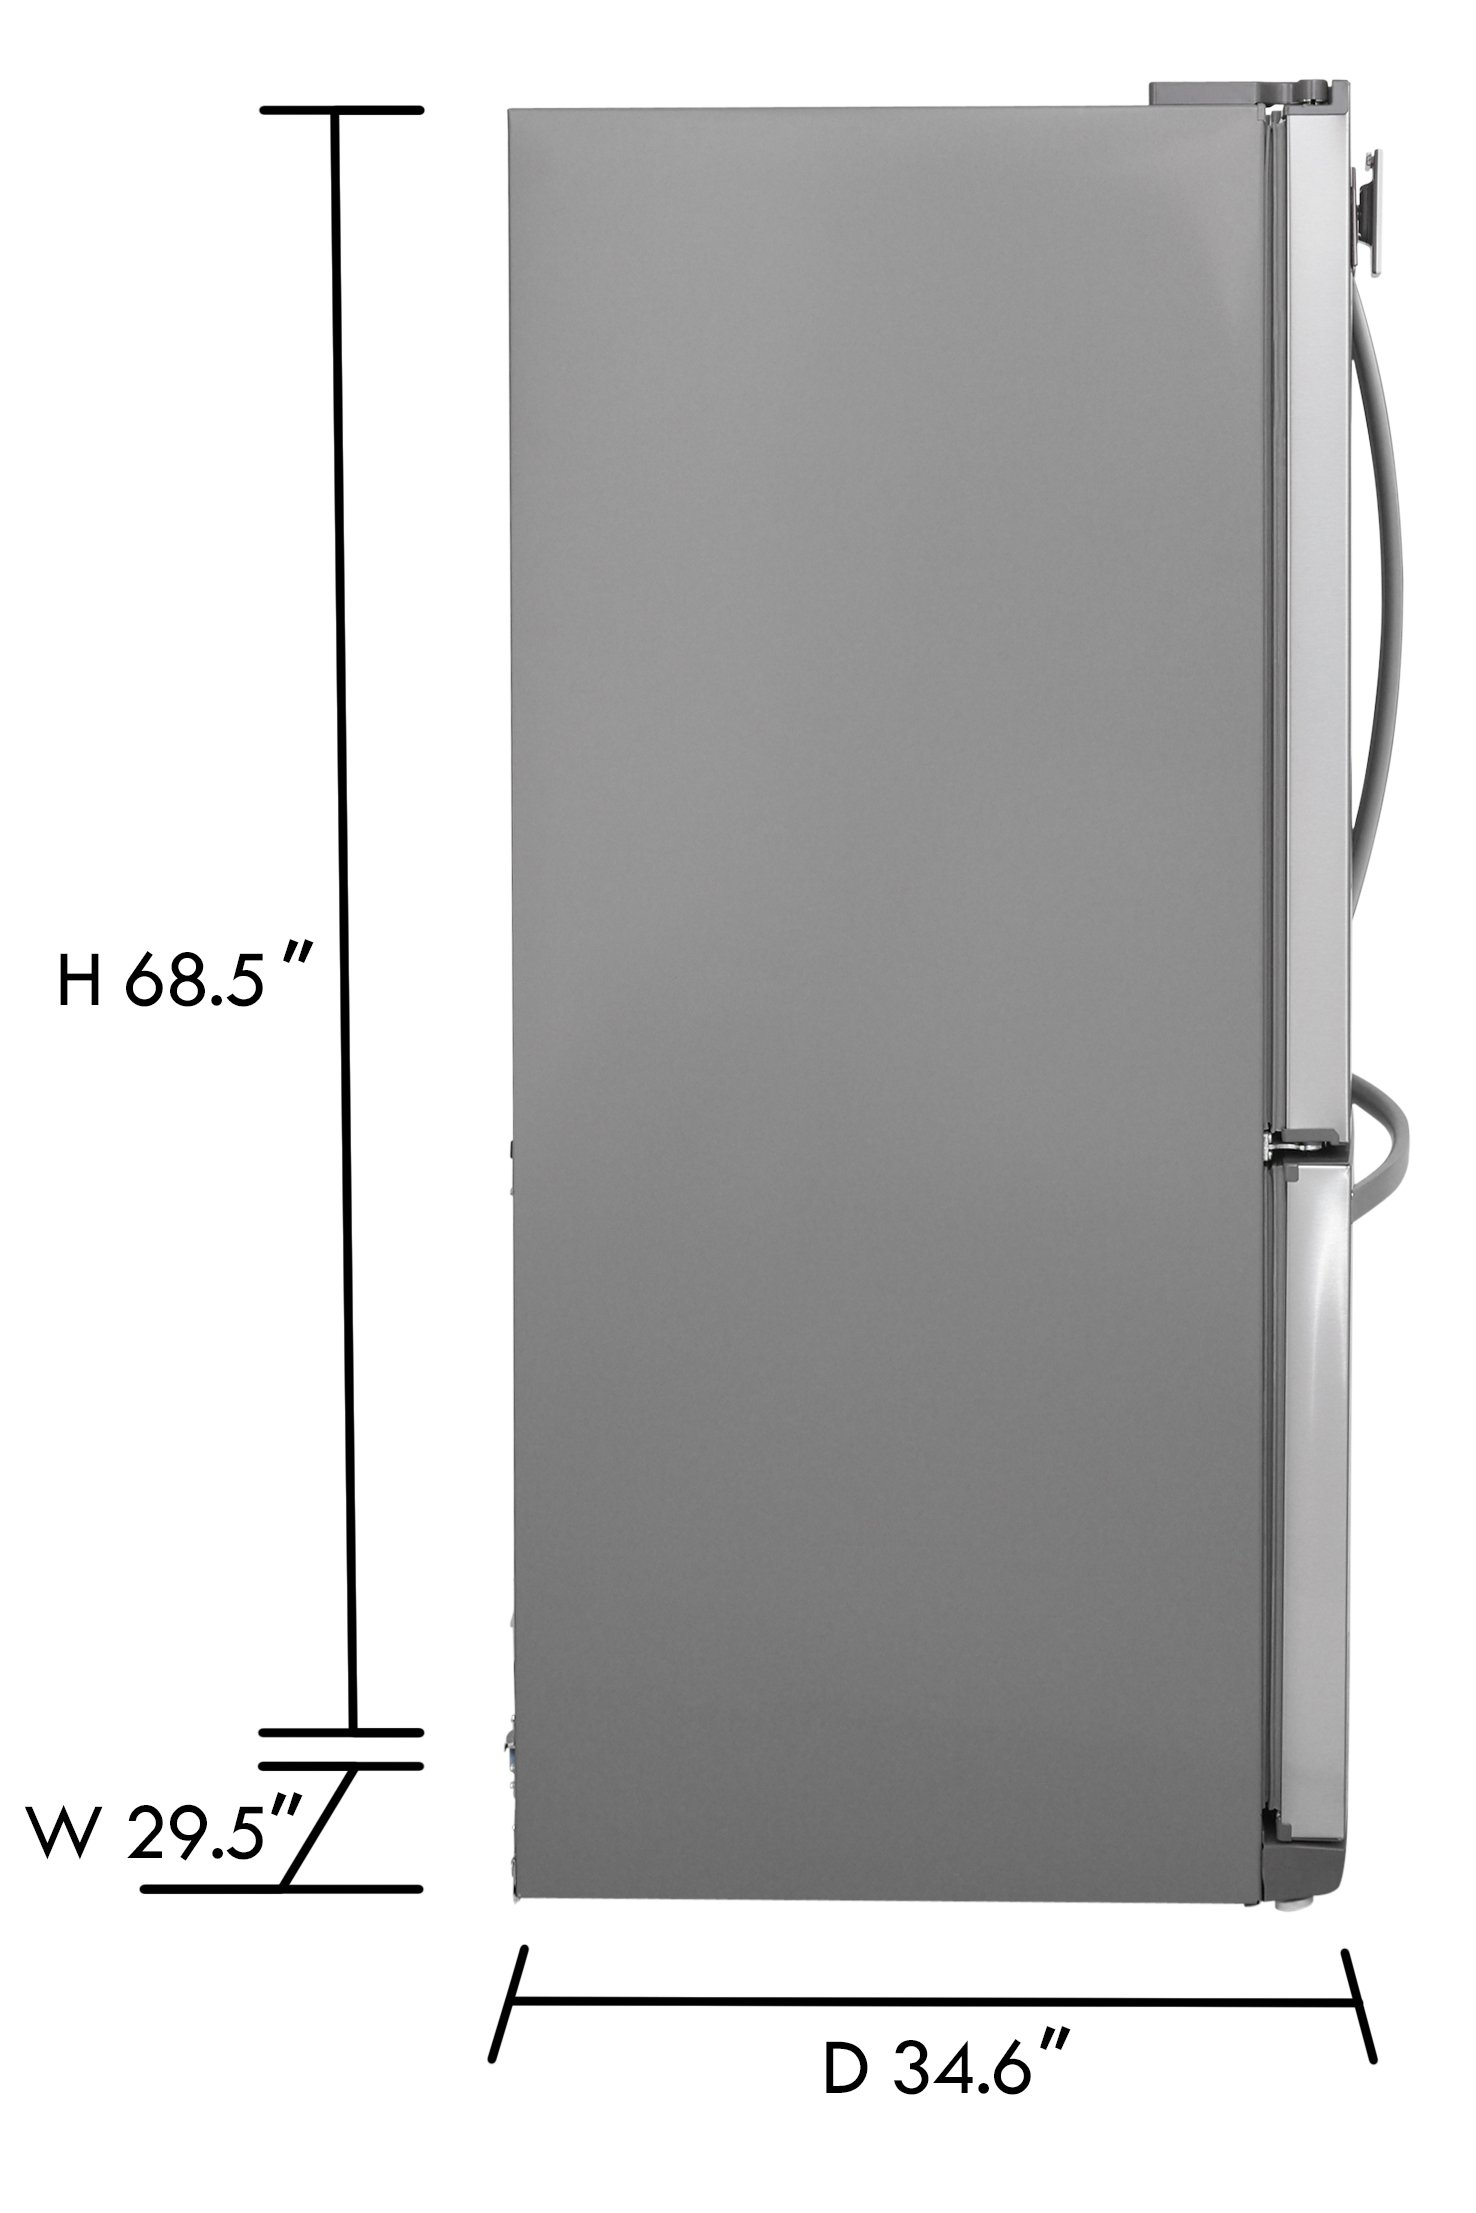 Kenmore 73003 19.5 cu. ft. Non-Dispense French Door Bottom-Freezer Refrigerator in Stainless Steel, includes delivery and hookup (Available in select cities only) by Kenmore (Image #3)